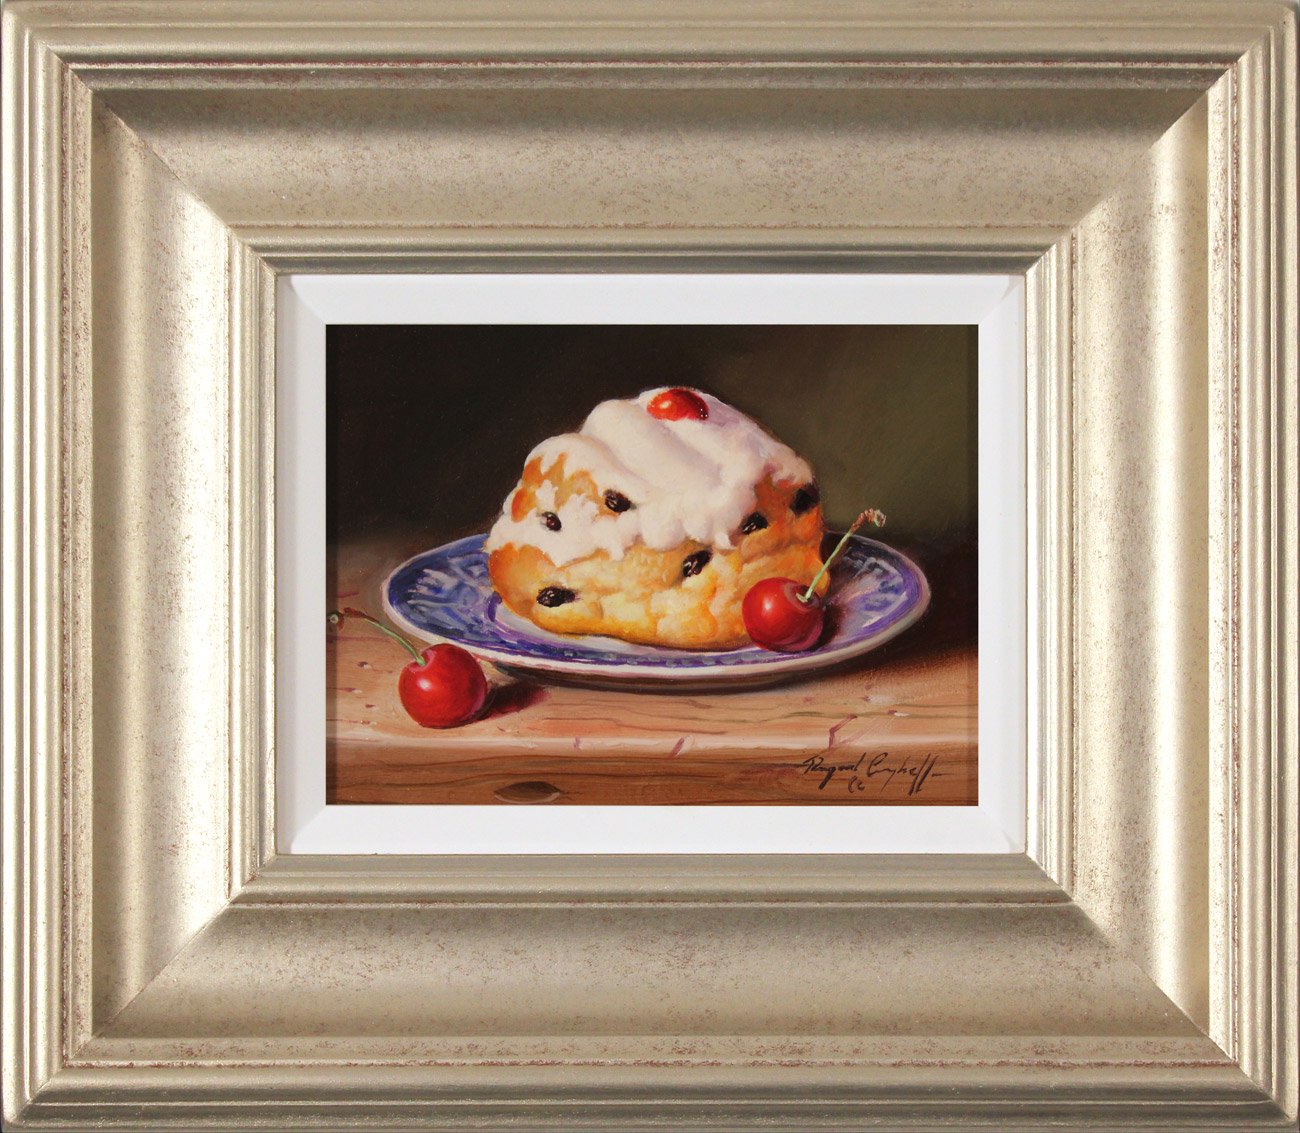 Raymond Campbell, Original oil painting on panel, Belgian Bun with Cherries  Click to enlarge